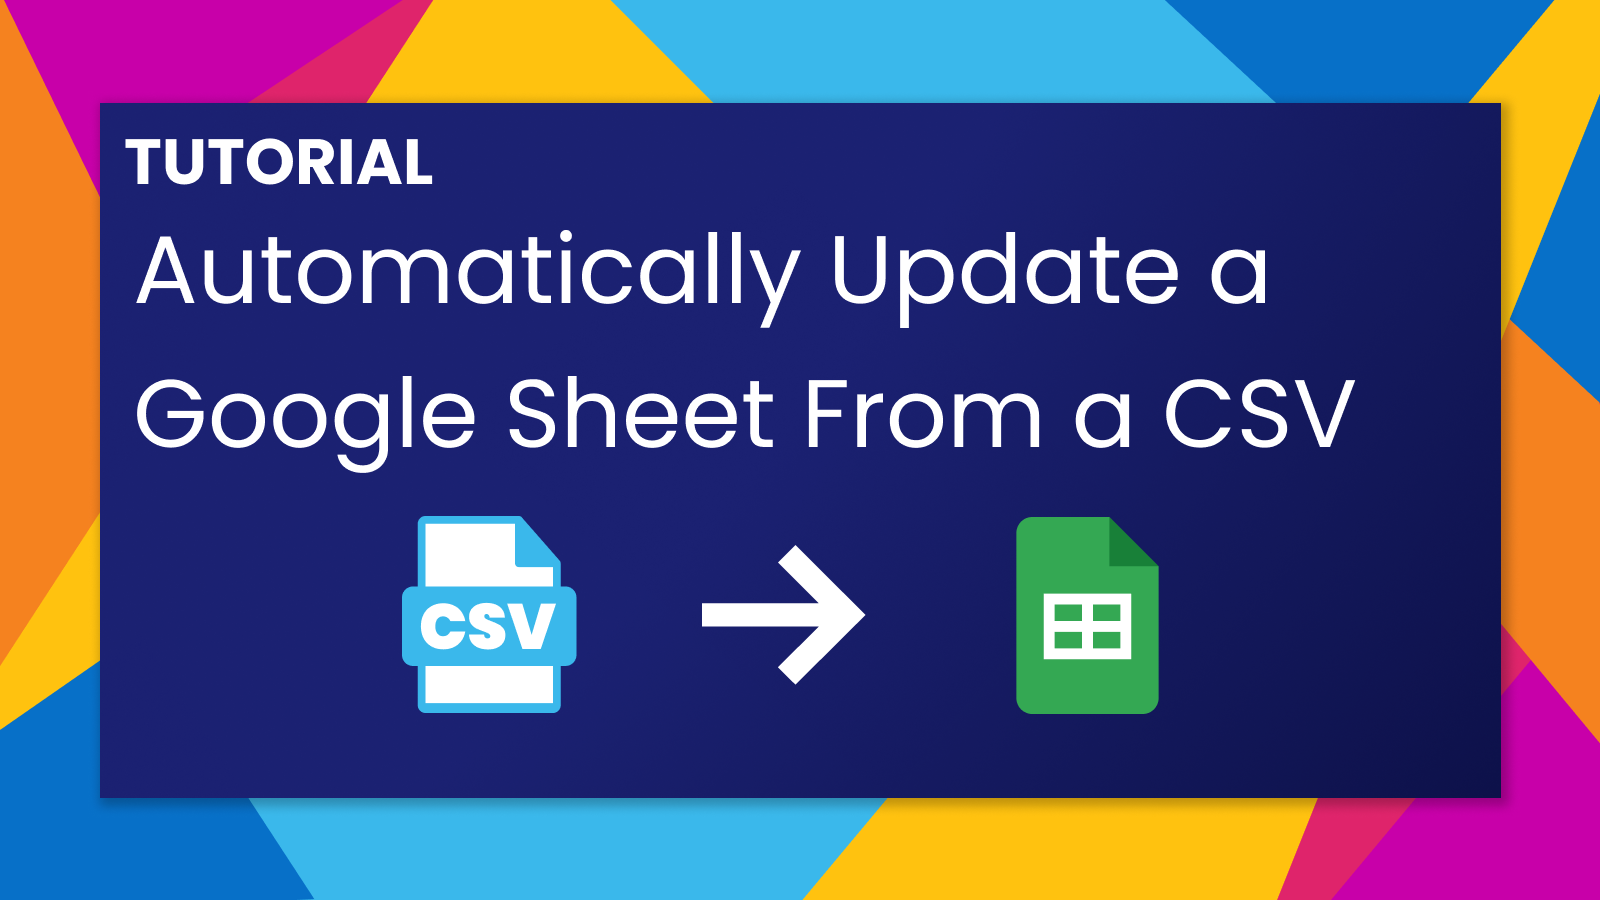 Automatically Update a Google Sheet From a Hosted CSV